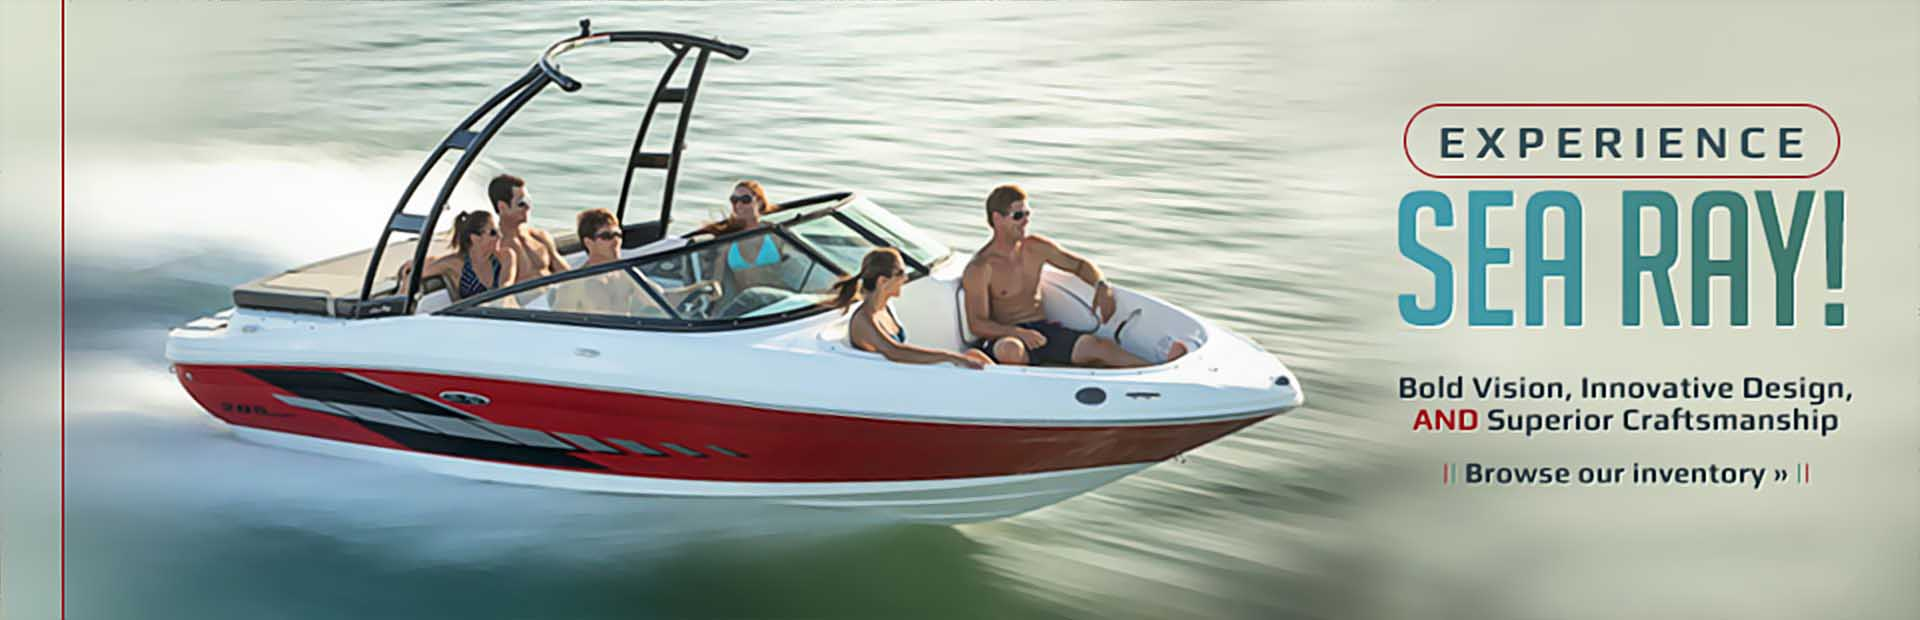 Experience Sea Ray: Click here to browse our inventory.